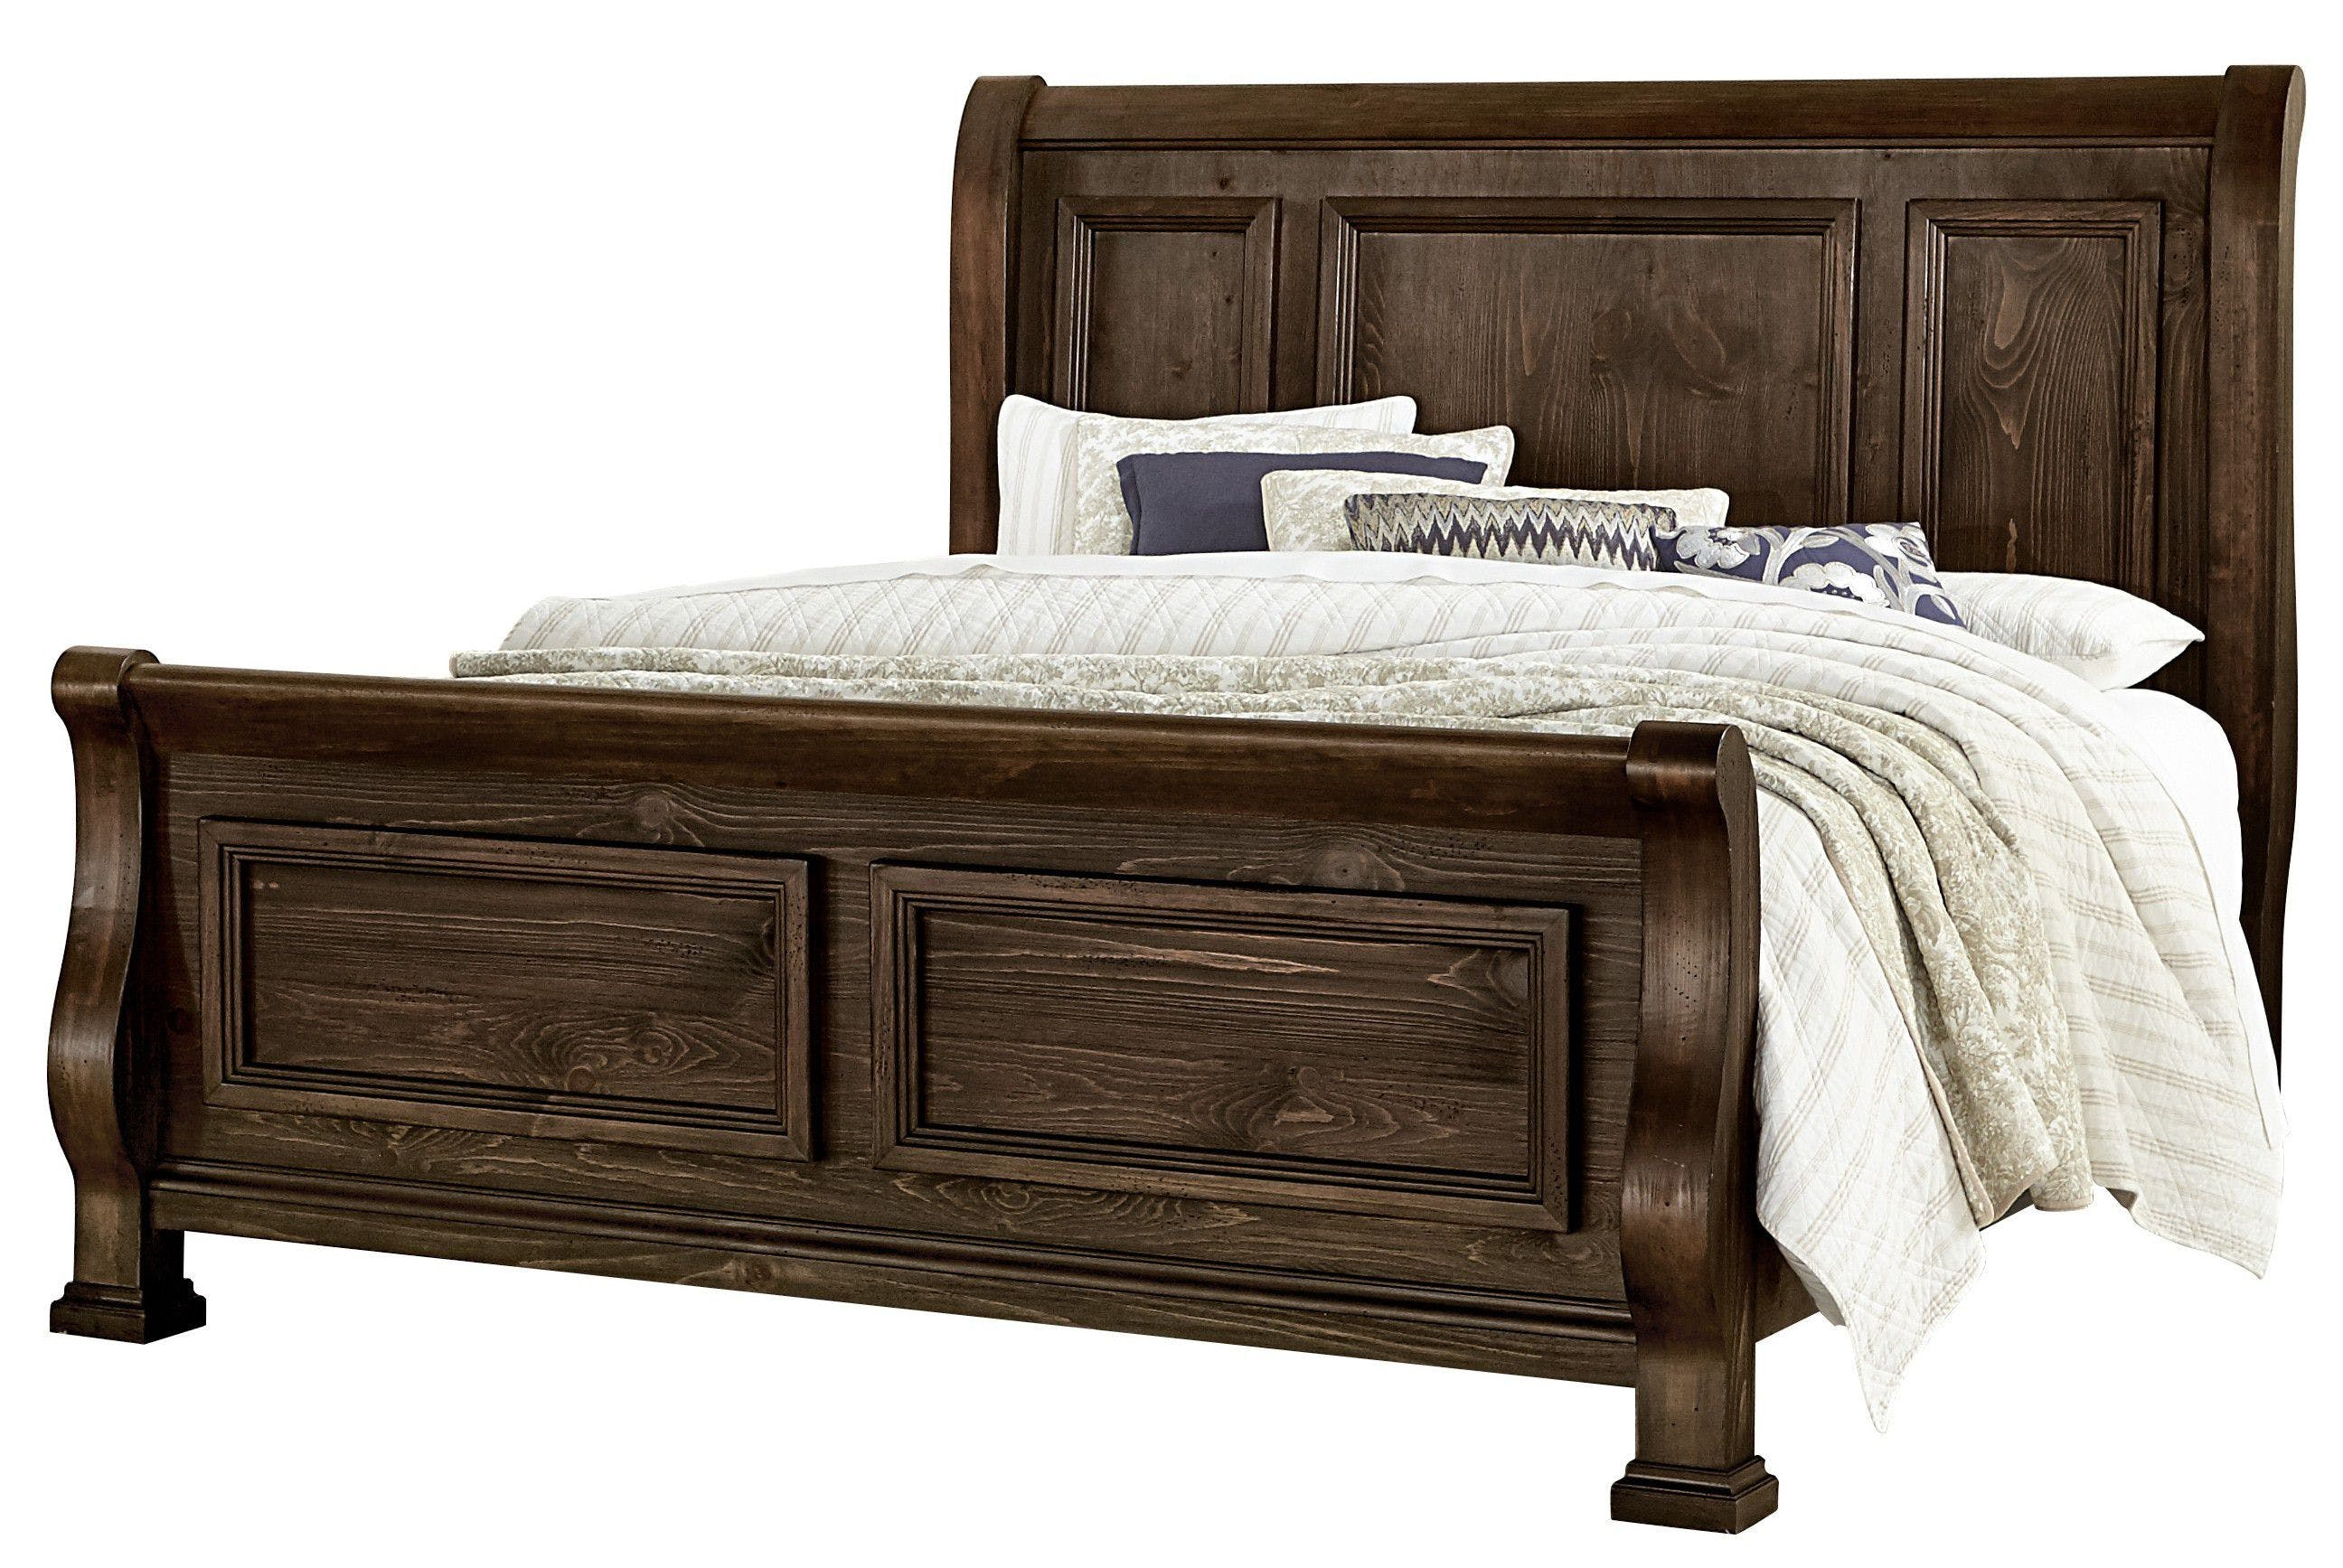 Vaughan Bassett Furniture Company King Sleigh Bed 680 663 366 922 Ms1 In Newnan Knox Furniture